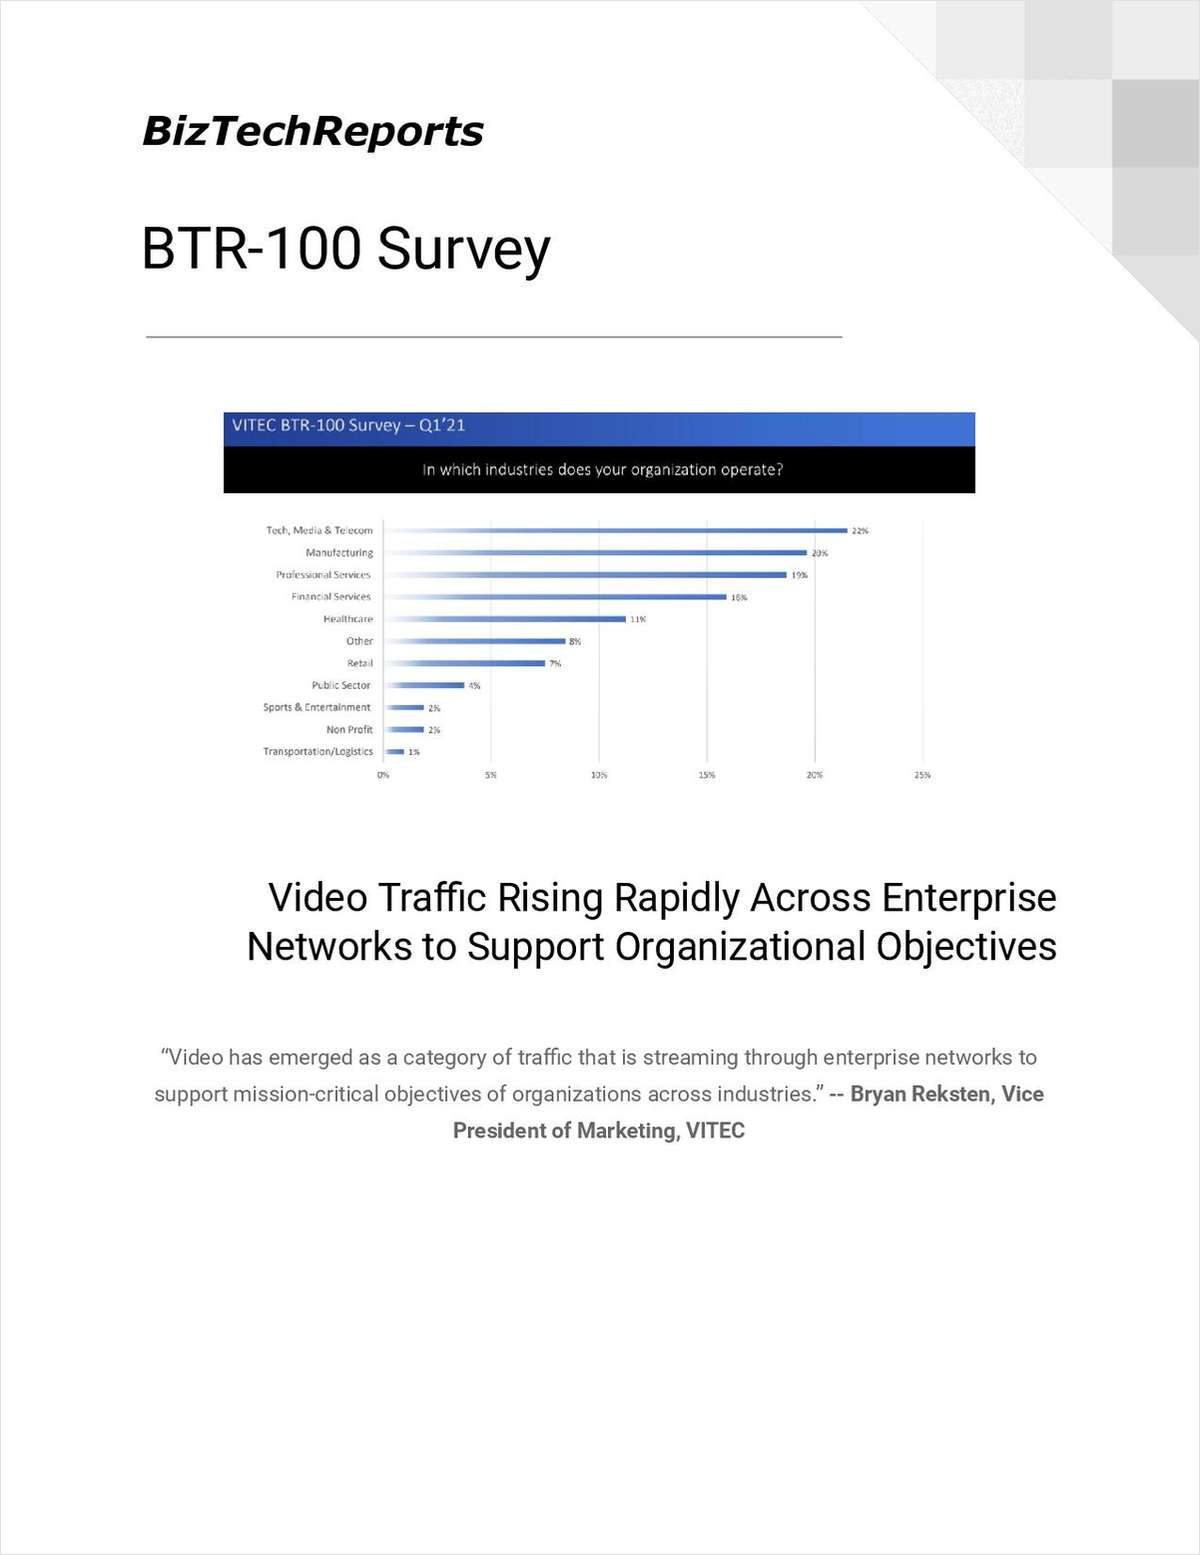 Video Traffic Rising Rapidly Across Enterprise Networks to Support Organizational Objectives